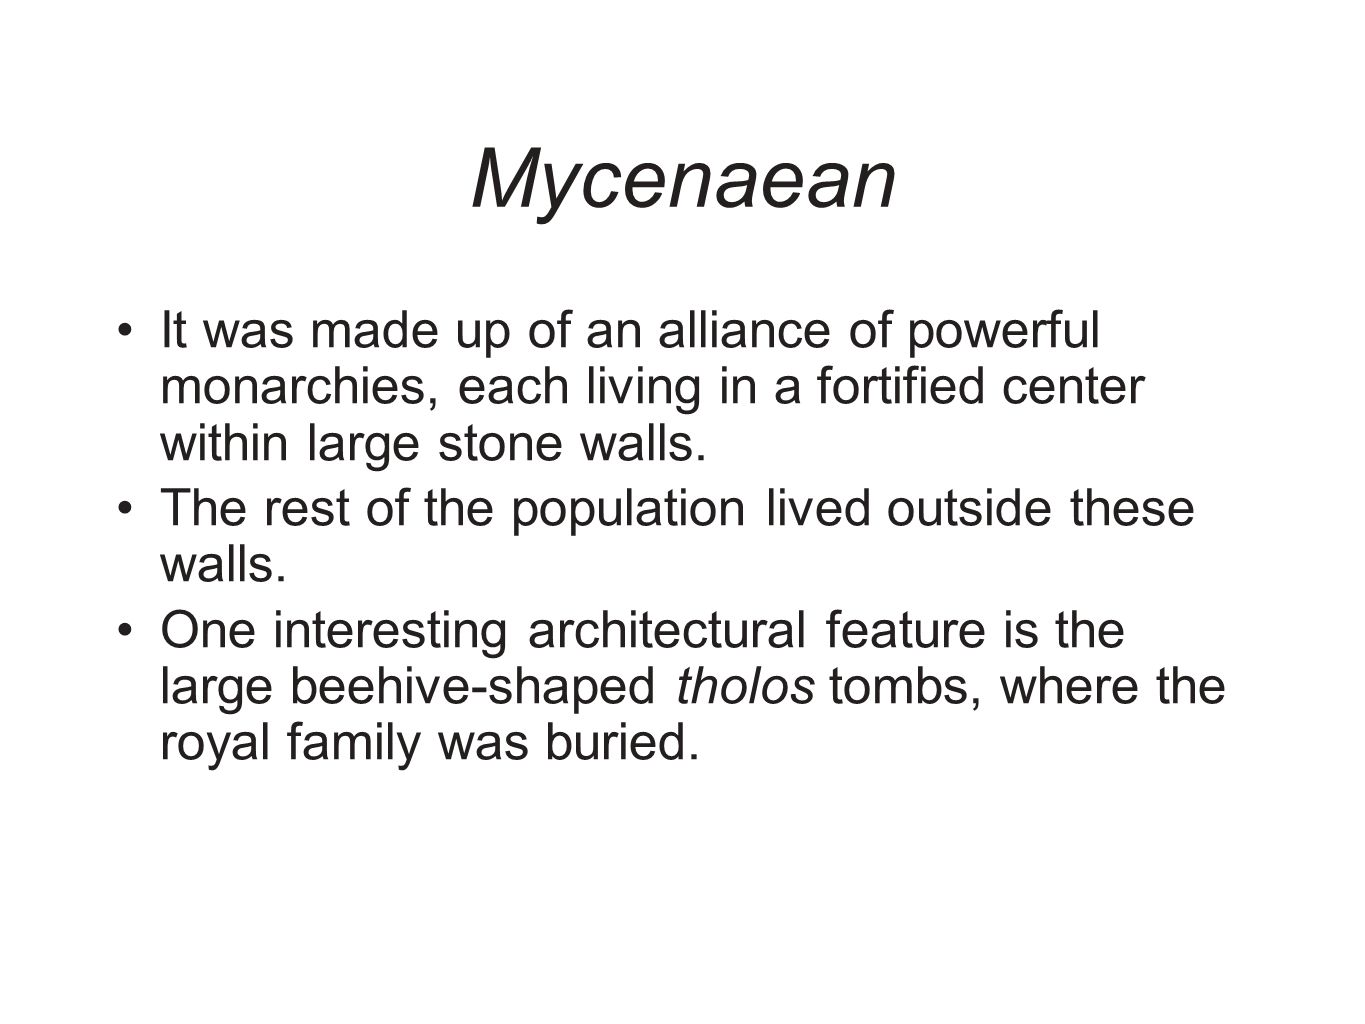 MycenaeanIt was made up of an alliance of powerful monarchies, each living in a fortified center within large stone walls.